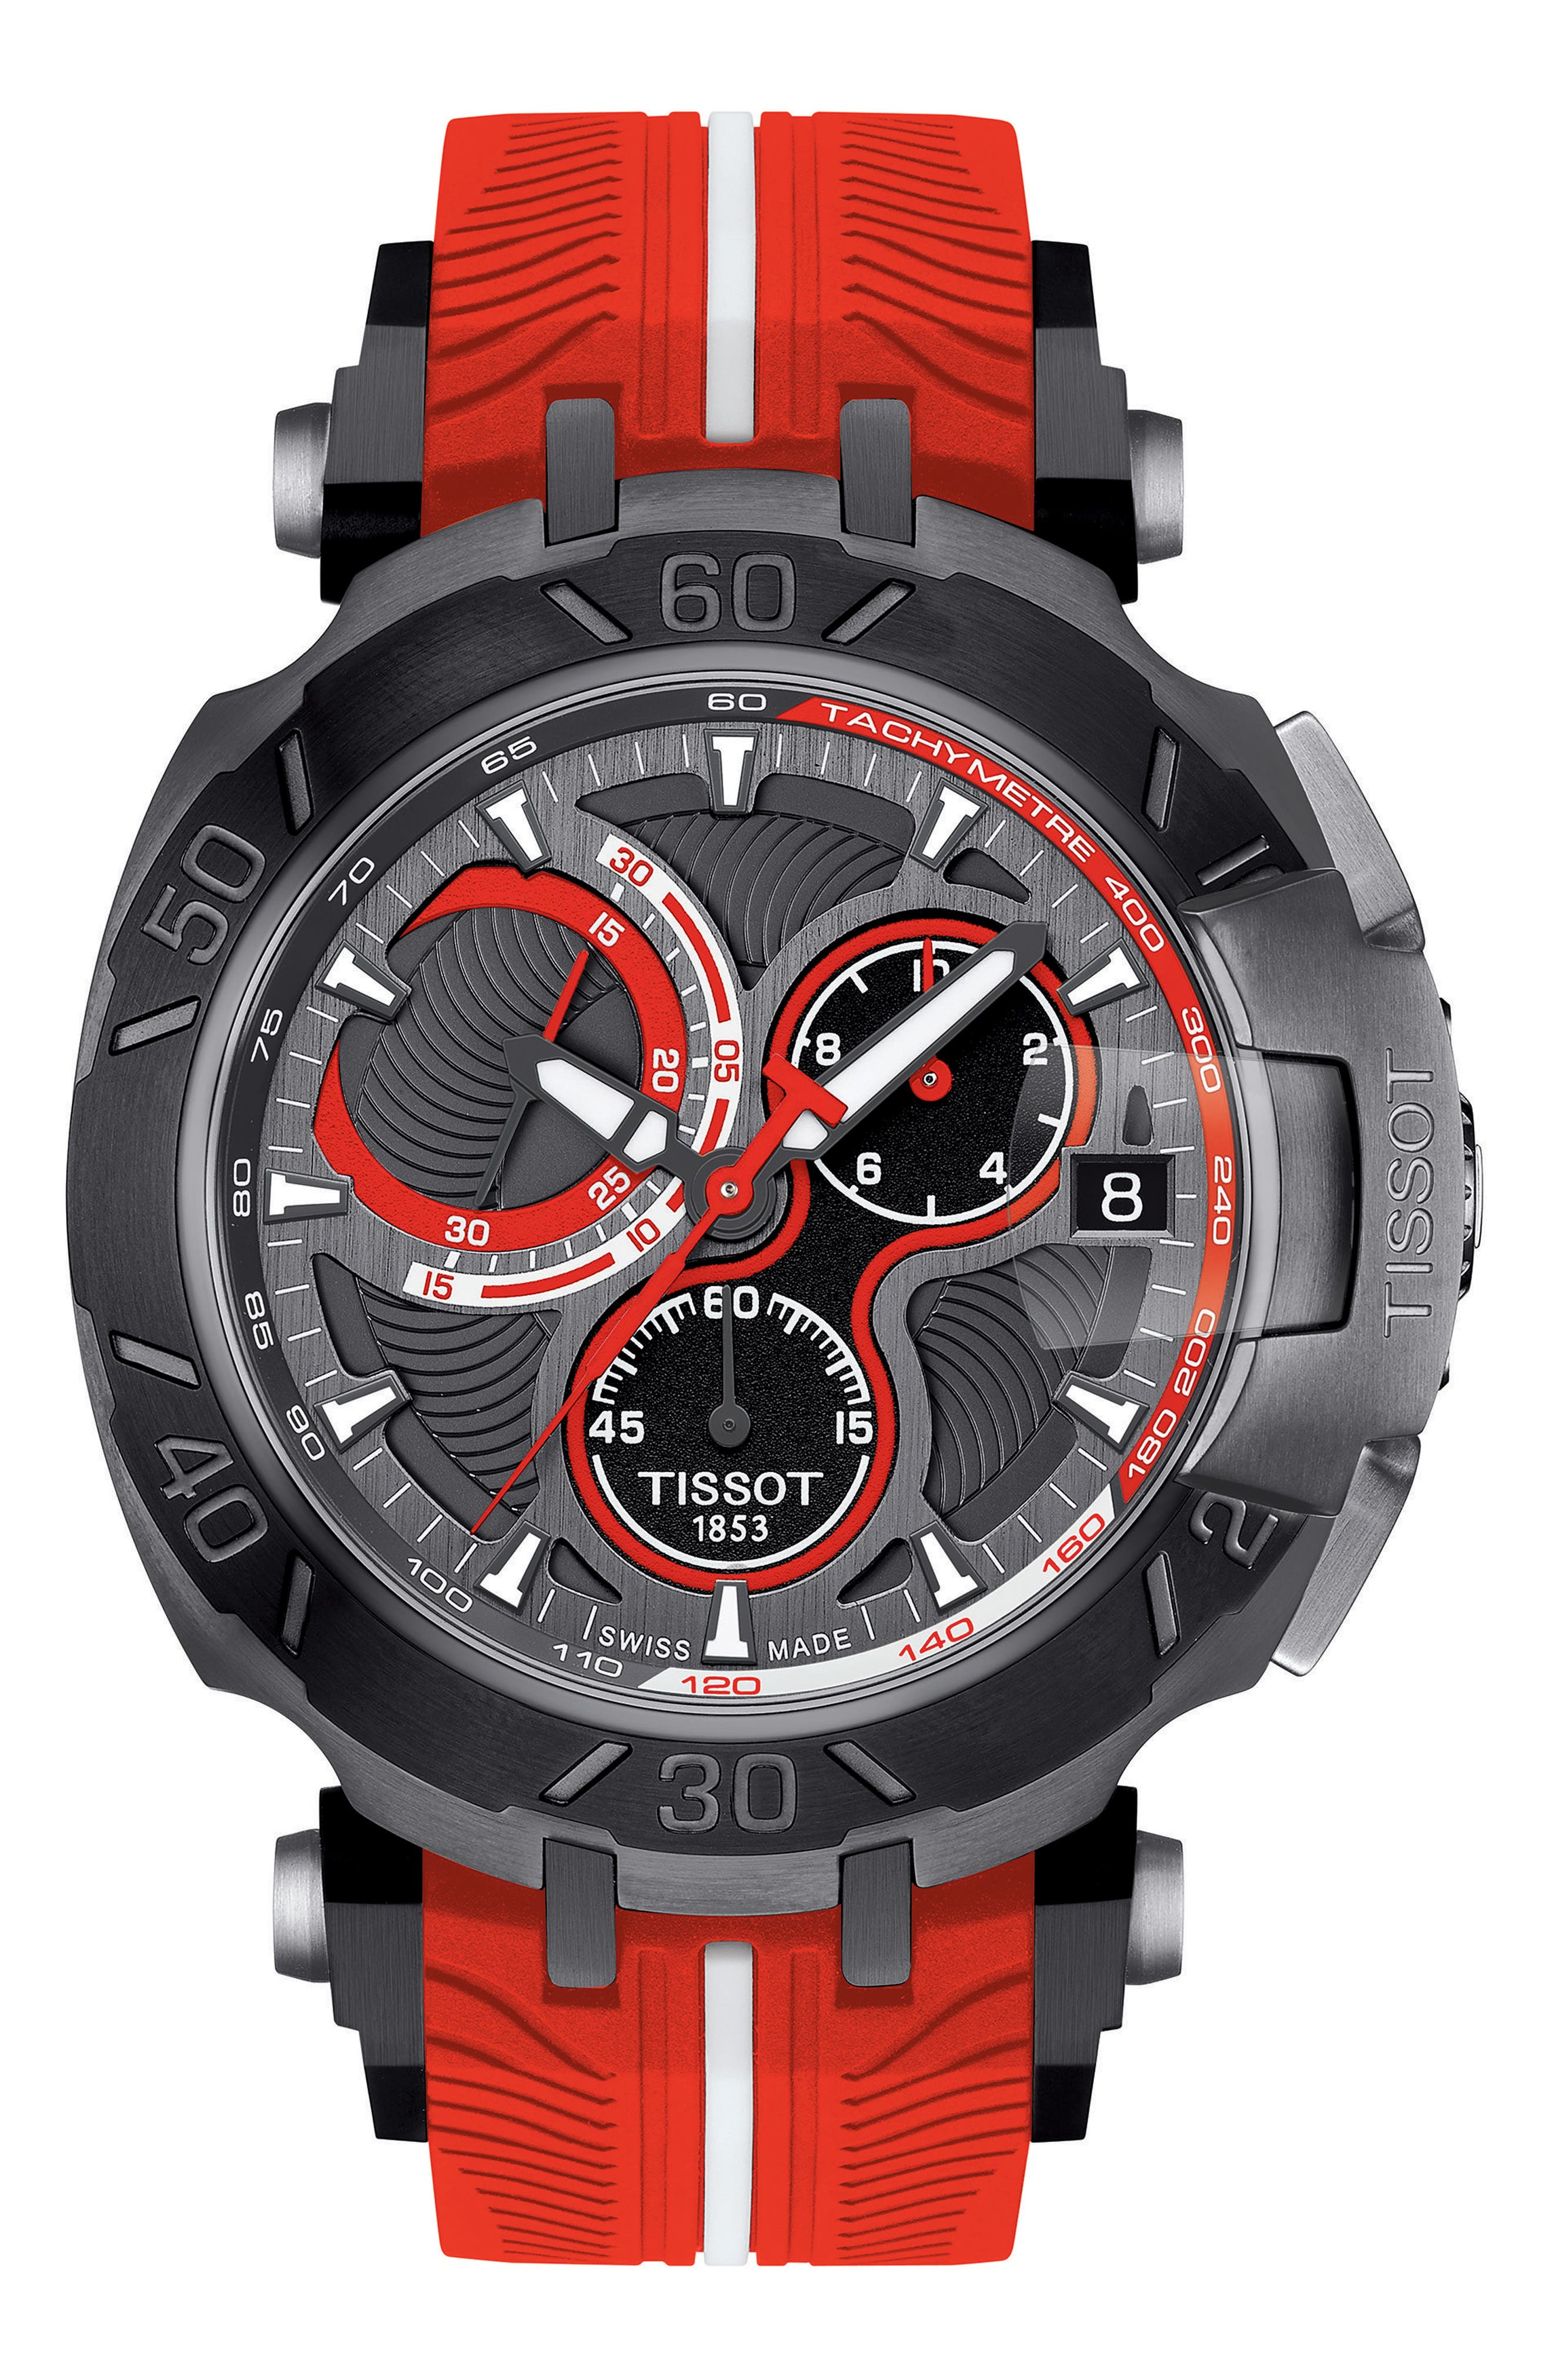 Tissot T-Race MotoGP Silicone Strap Watch, 39mm x 41mm